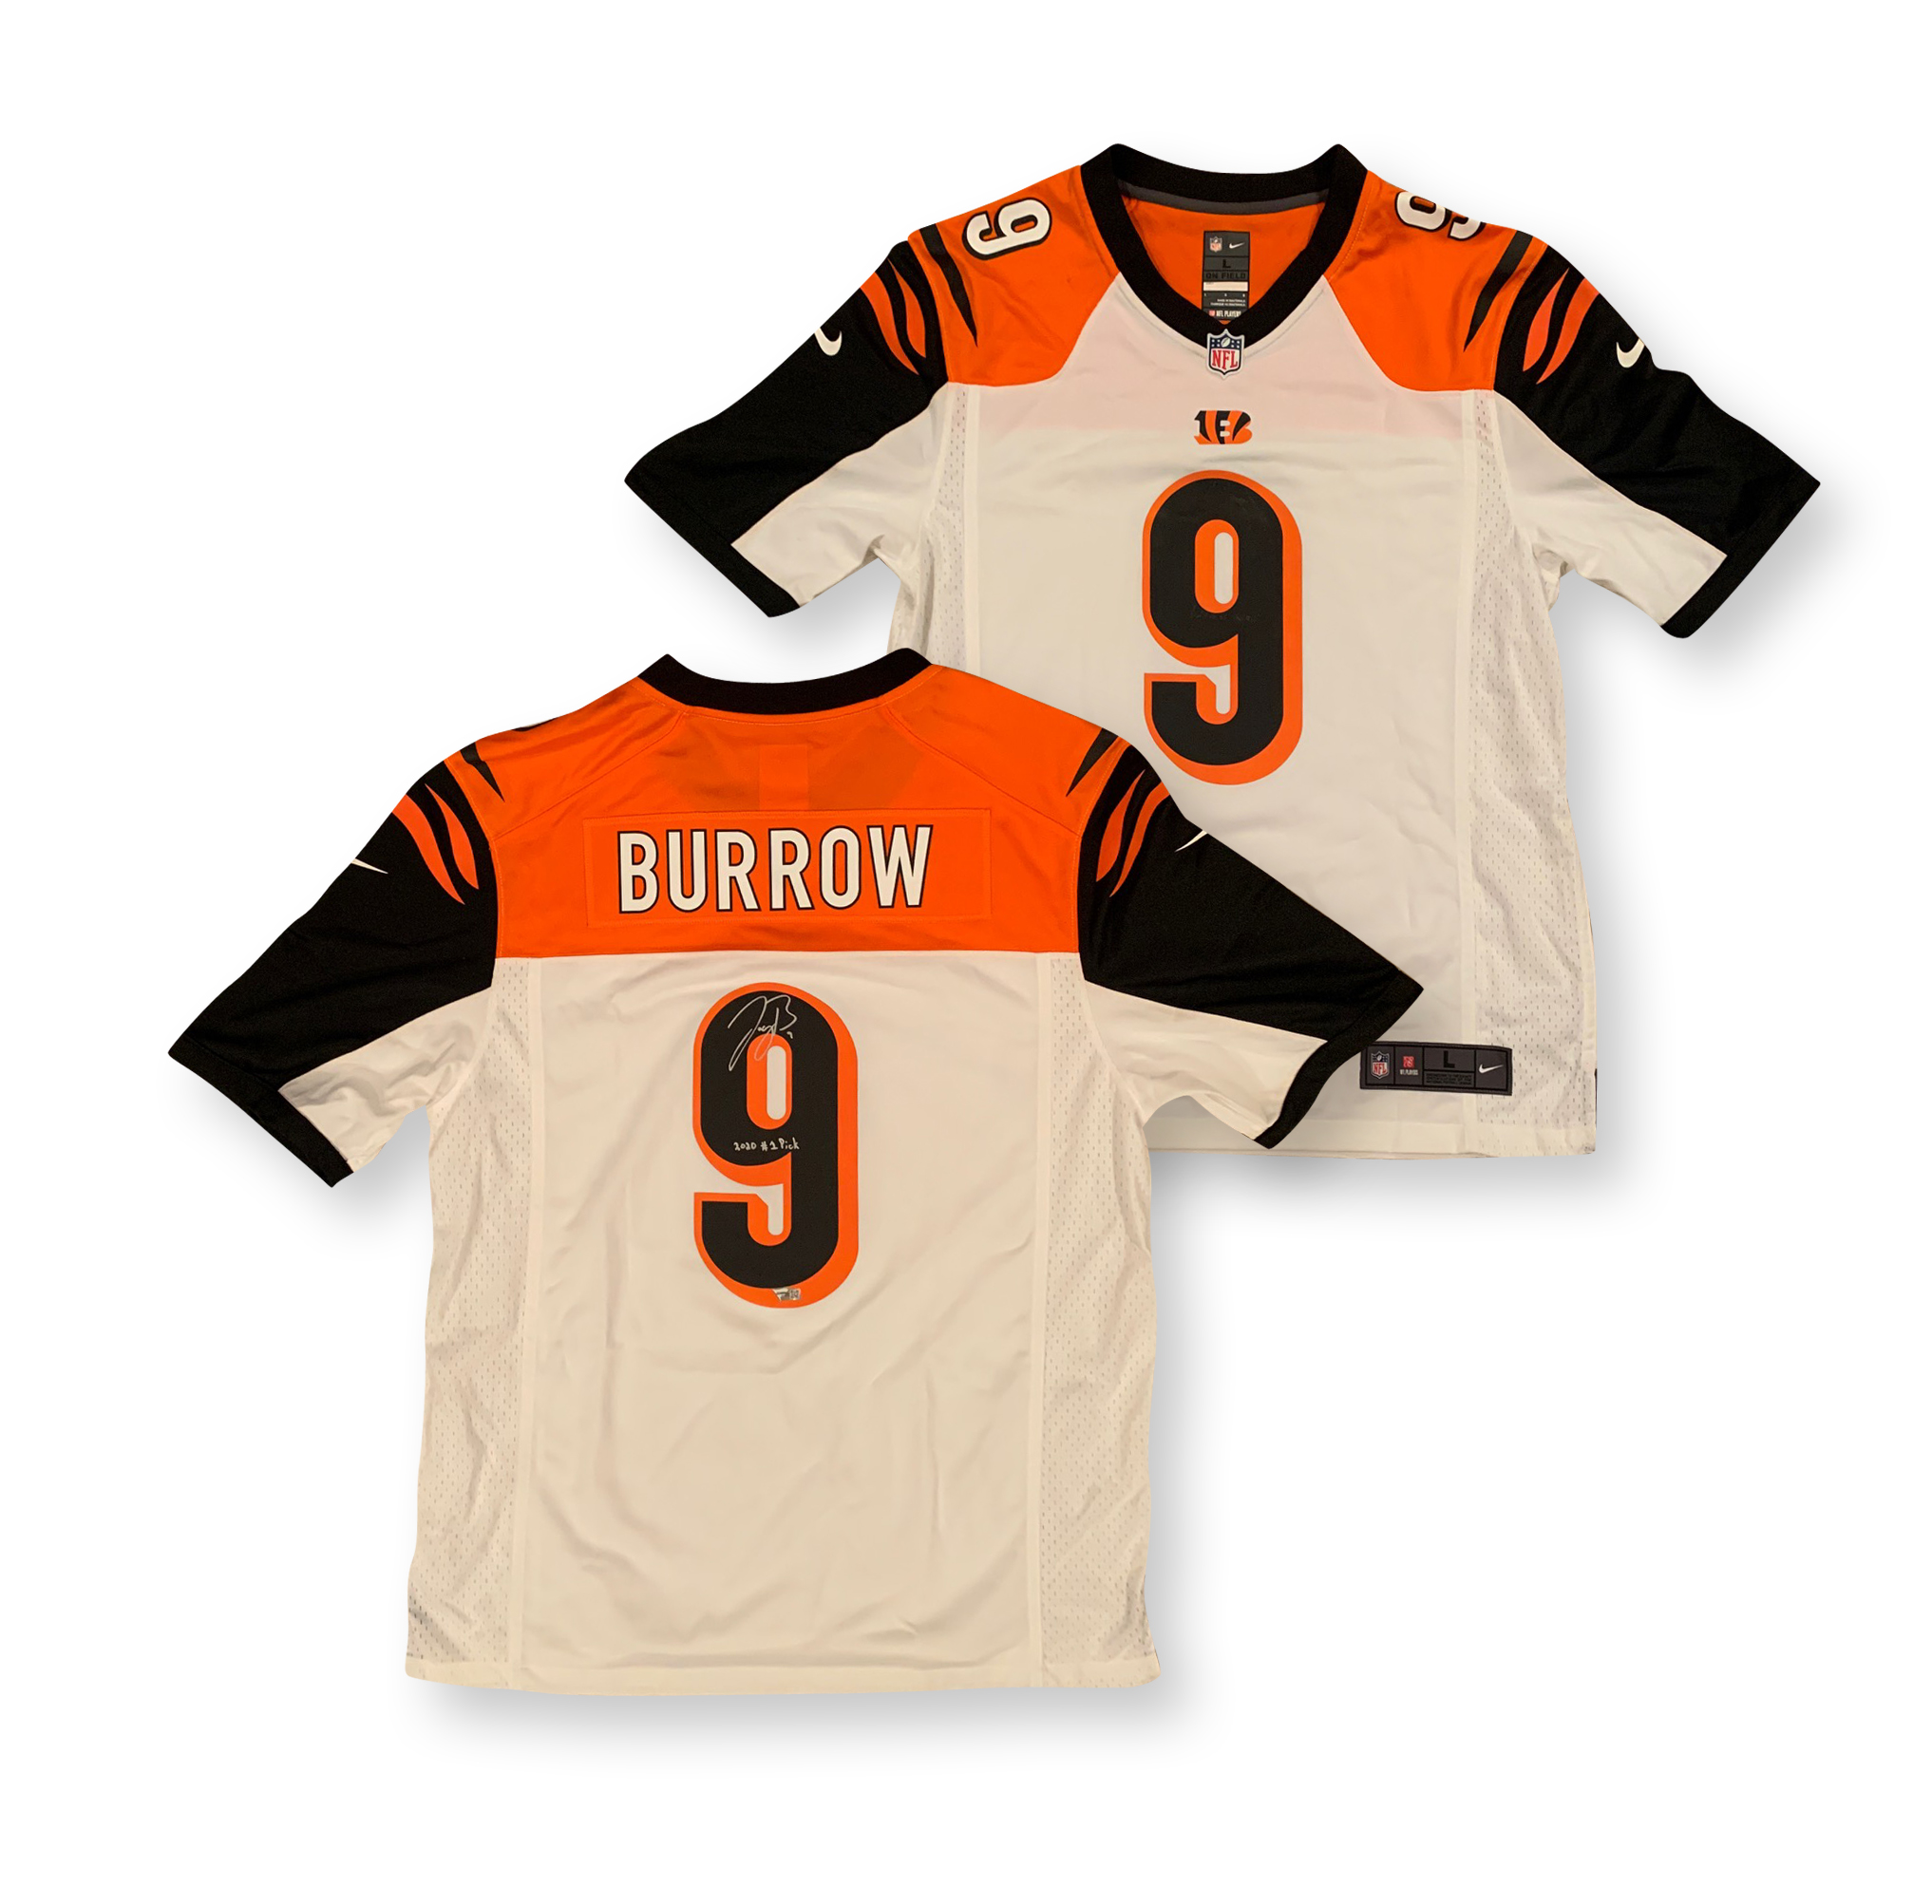 Joe Burrow Autographed Cincinnati Signed White Game Football Jersey 2020 1st PICK Fanatics Authentic COA Bengals 2020 #1 overall pick and former LSU quarterback and 2019 Heisman Trophy winner and National Champion Joe Burrow has autographed this official Bengals Game jersey and written 2020 #1 PICK.  Jersey is a size L. Name and numbers screened on. Autograph is authenticated by Fanatics Authentic who has Burrow as their exclusive memorabilia client. Item comes with their unique hologram # on the item that is verified on their website. 100% authentic.